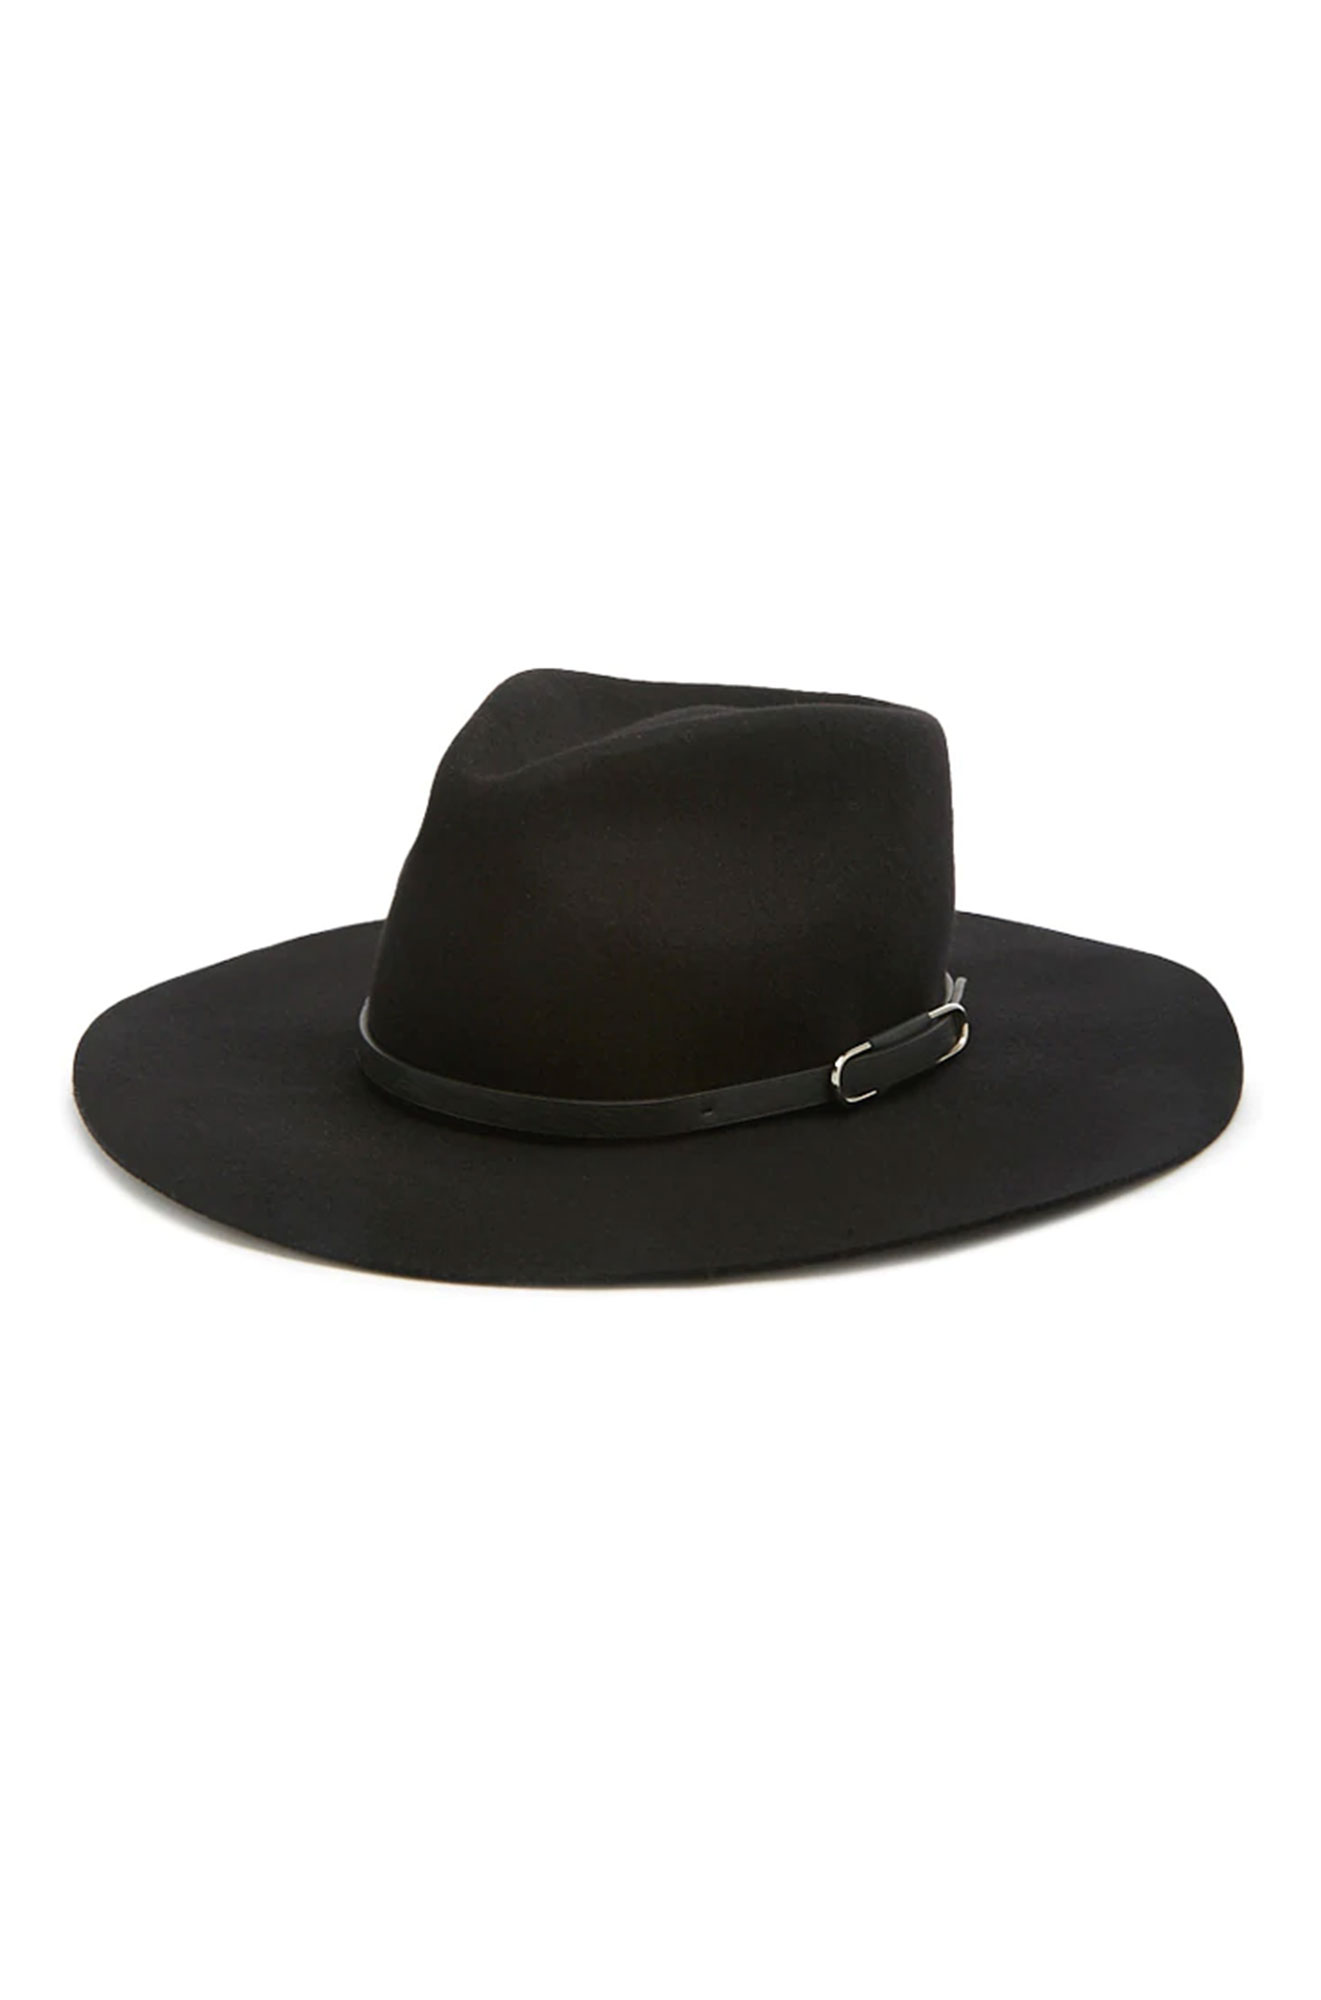 7 Black Panama Hats Inspired by Gigi Hadid¹s Œ90s Wedding Style - If you prefer wool to straw, this economical wide-brim style is for you. $22.90, forever21.com